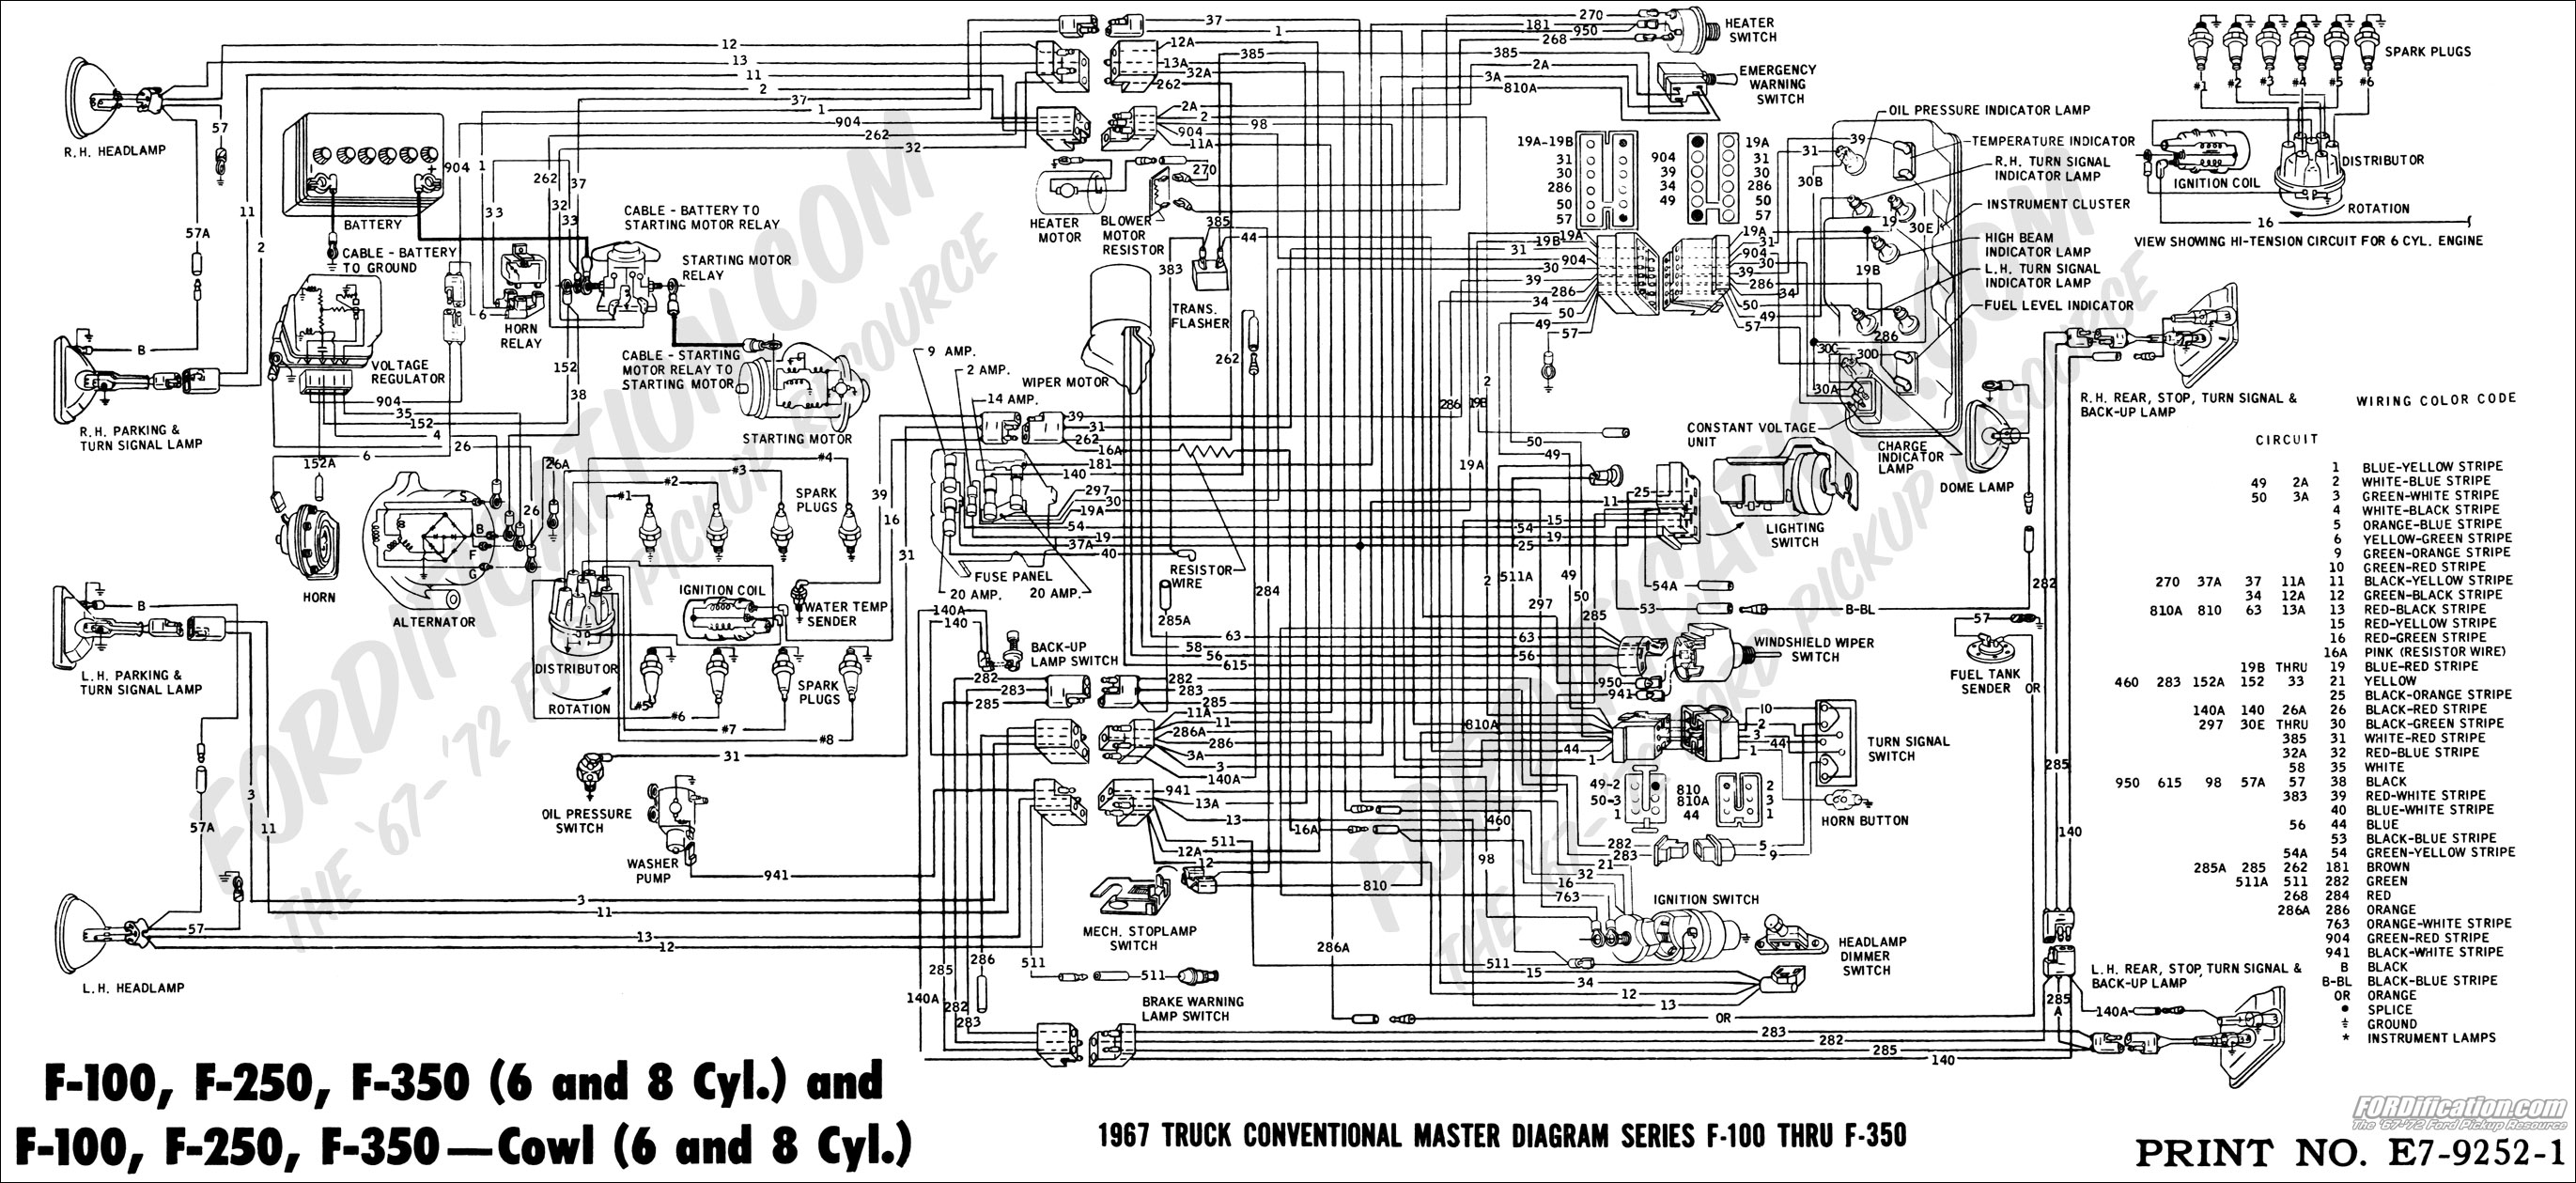 67masterdiagram ford truck technical drawings and schematics section h wiring ford f150 wiring diagrams at readyjetset.co